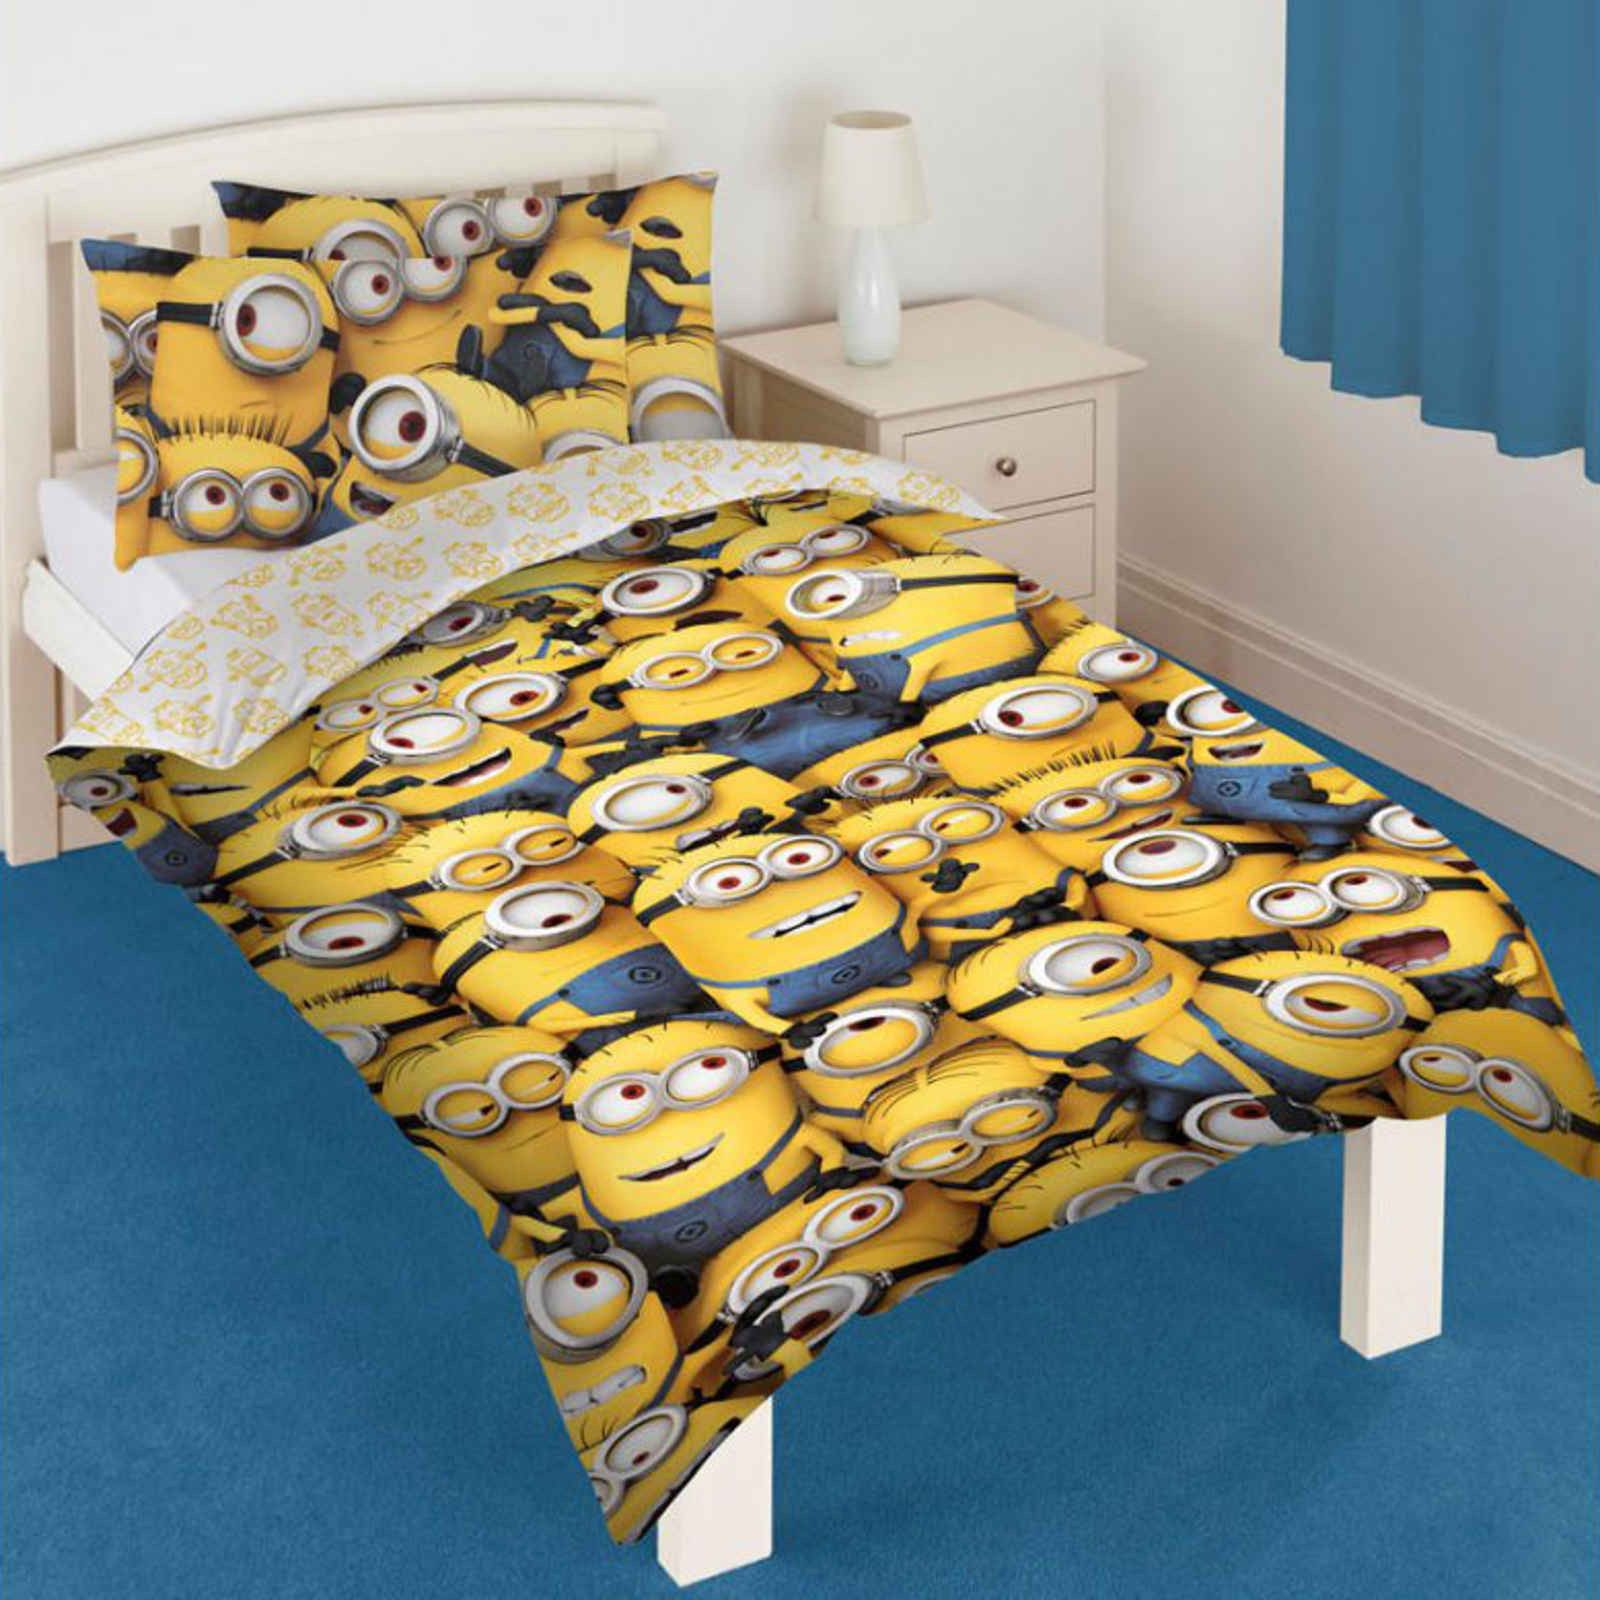 if you like frozen avengers spiderman despicable me minions or spongebob you will love one of these character themed official duvet cover set ebay - Spongebob Bedroom Set